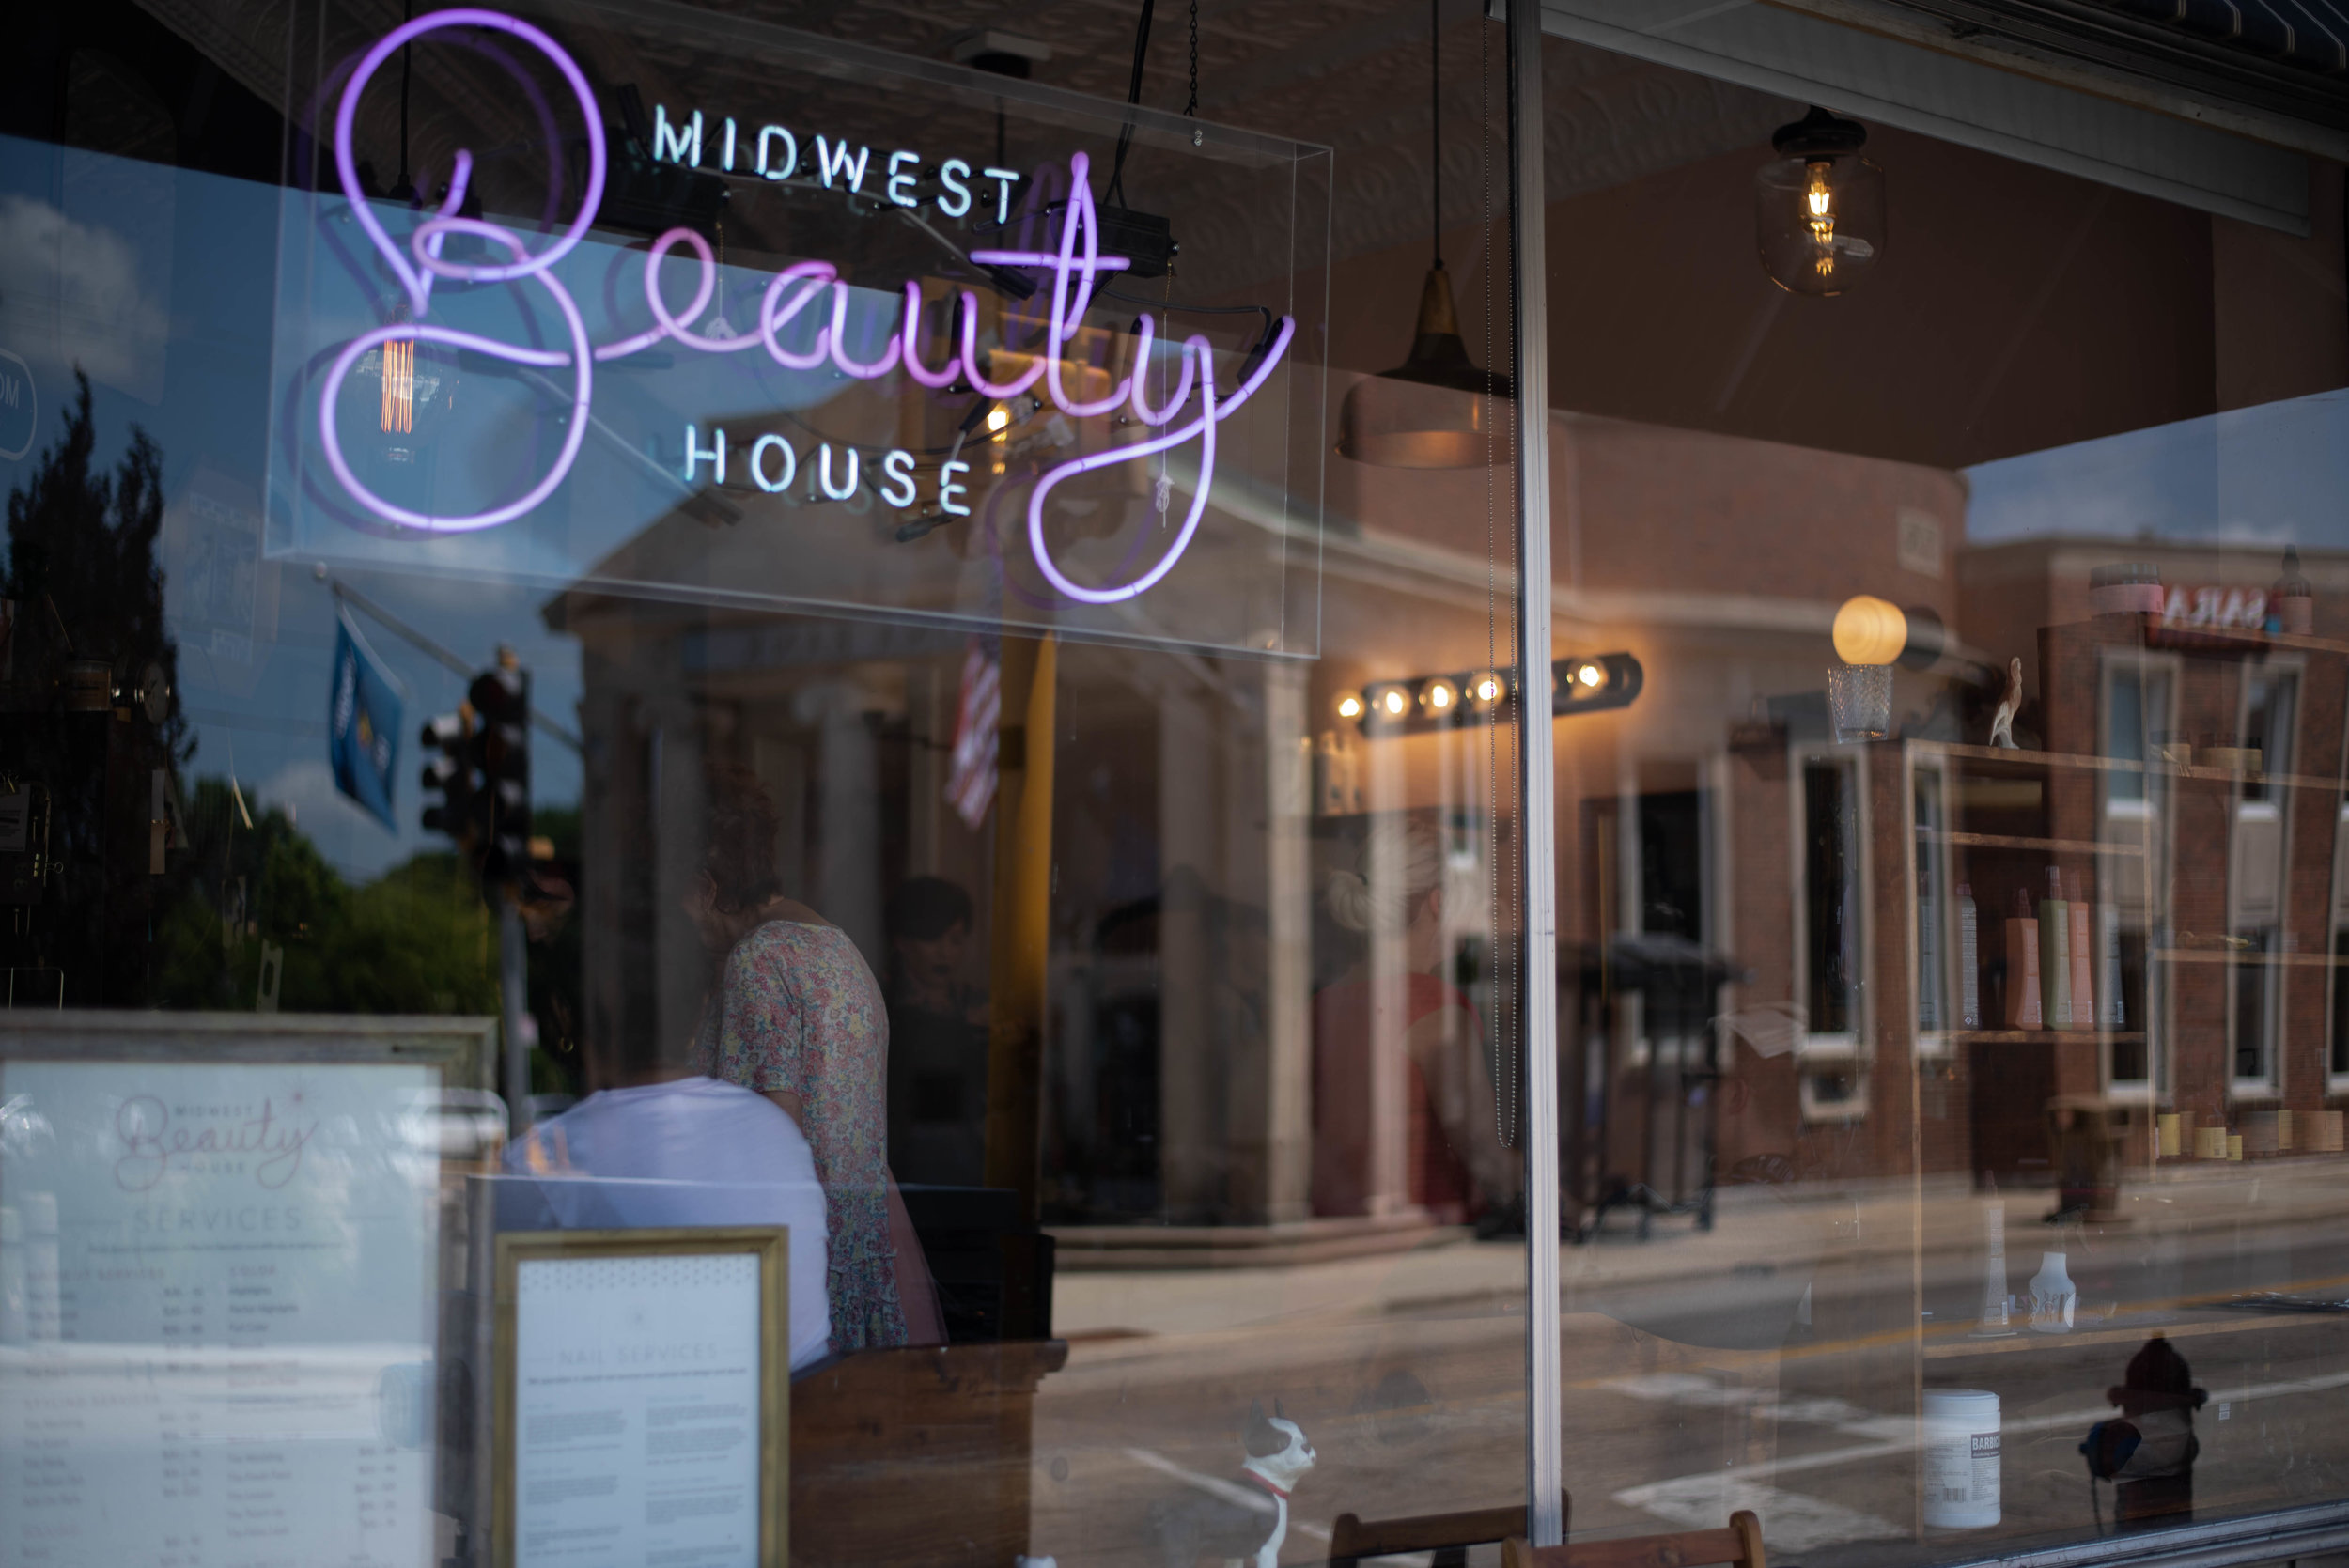 MISSIONWe aspire to be your home for beauty. Our artists and the people we take care of are the most important part of our business and always will be. We believe that beauty is a vital part of all people—at MBH we support that beauty. We believe that fashion is a form of self-expression and art, and that style can exist apart from a materialistic society, as beauty is not grounded in vanity. Whole beauty is important to us, which is why we take an external and internal approach. For this reason, MBH offers products and services that focus on all areas of building a beautiful life. -